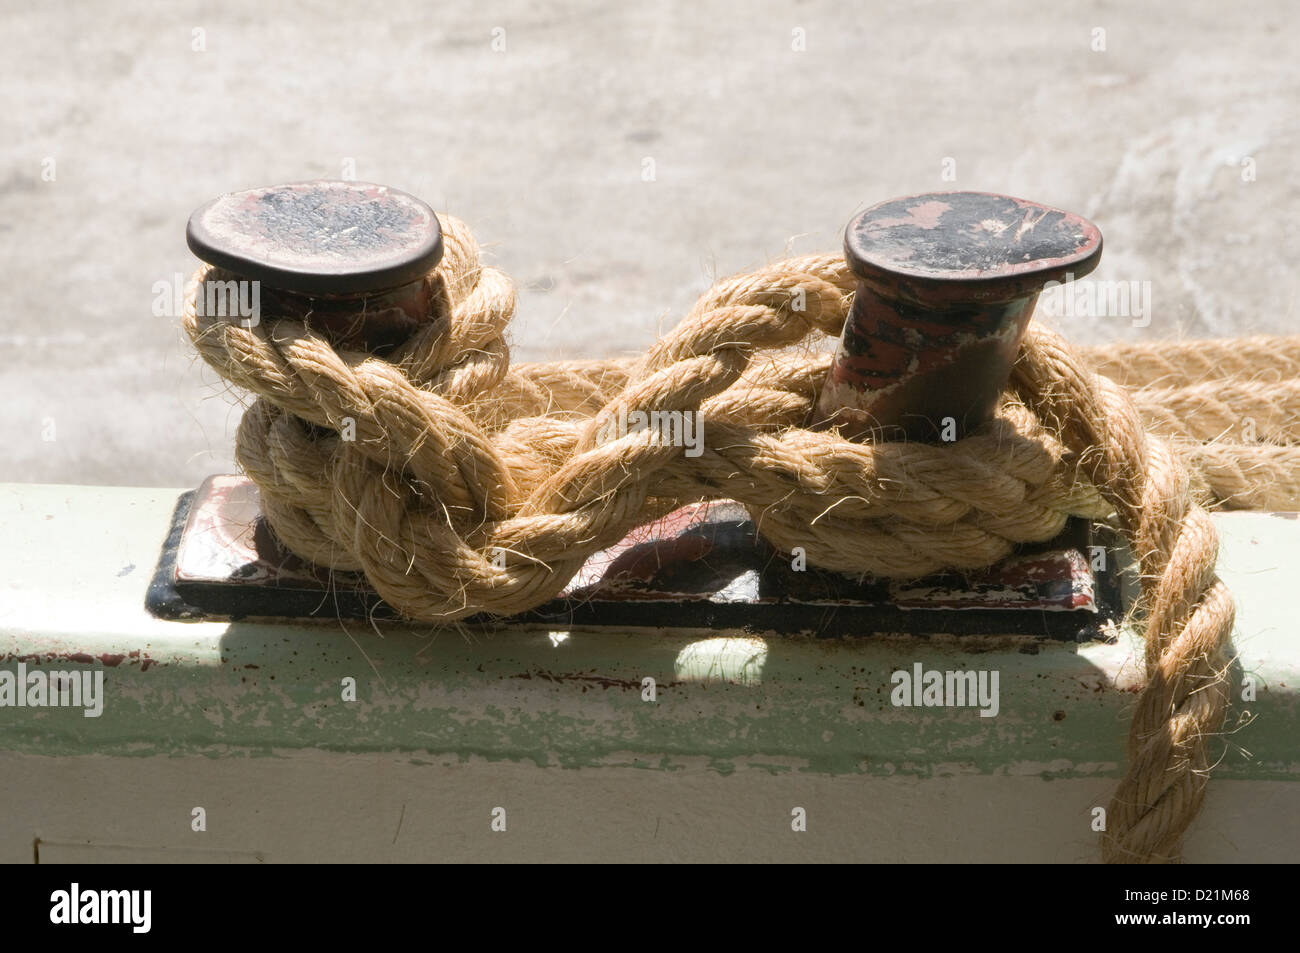 rope knots knot tied tying up moored mooring boat boats harbor harbors twine knotted get quayside - Stock Image